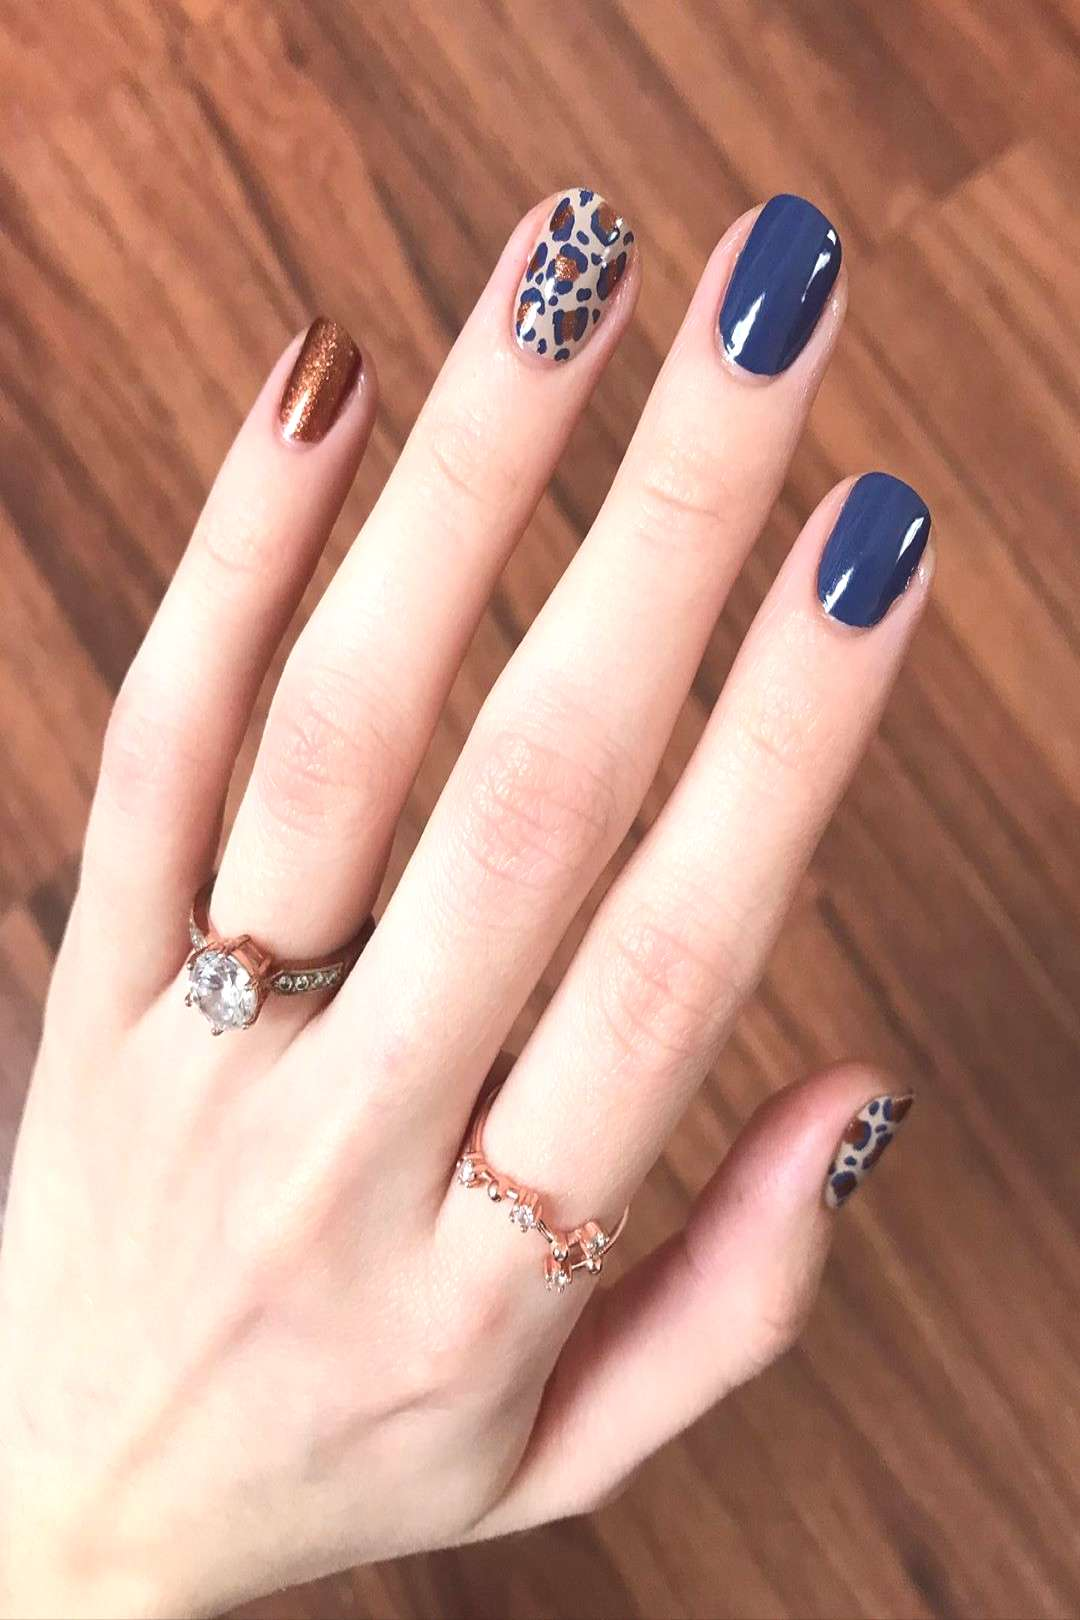 [ gifted ] - Lets get LOUD with another leopard print mani using